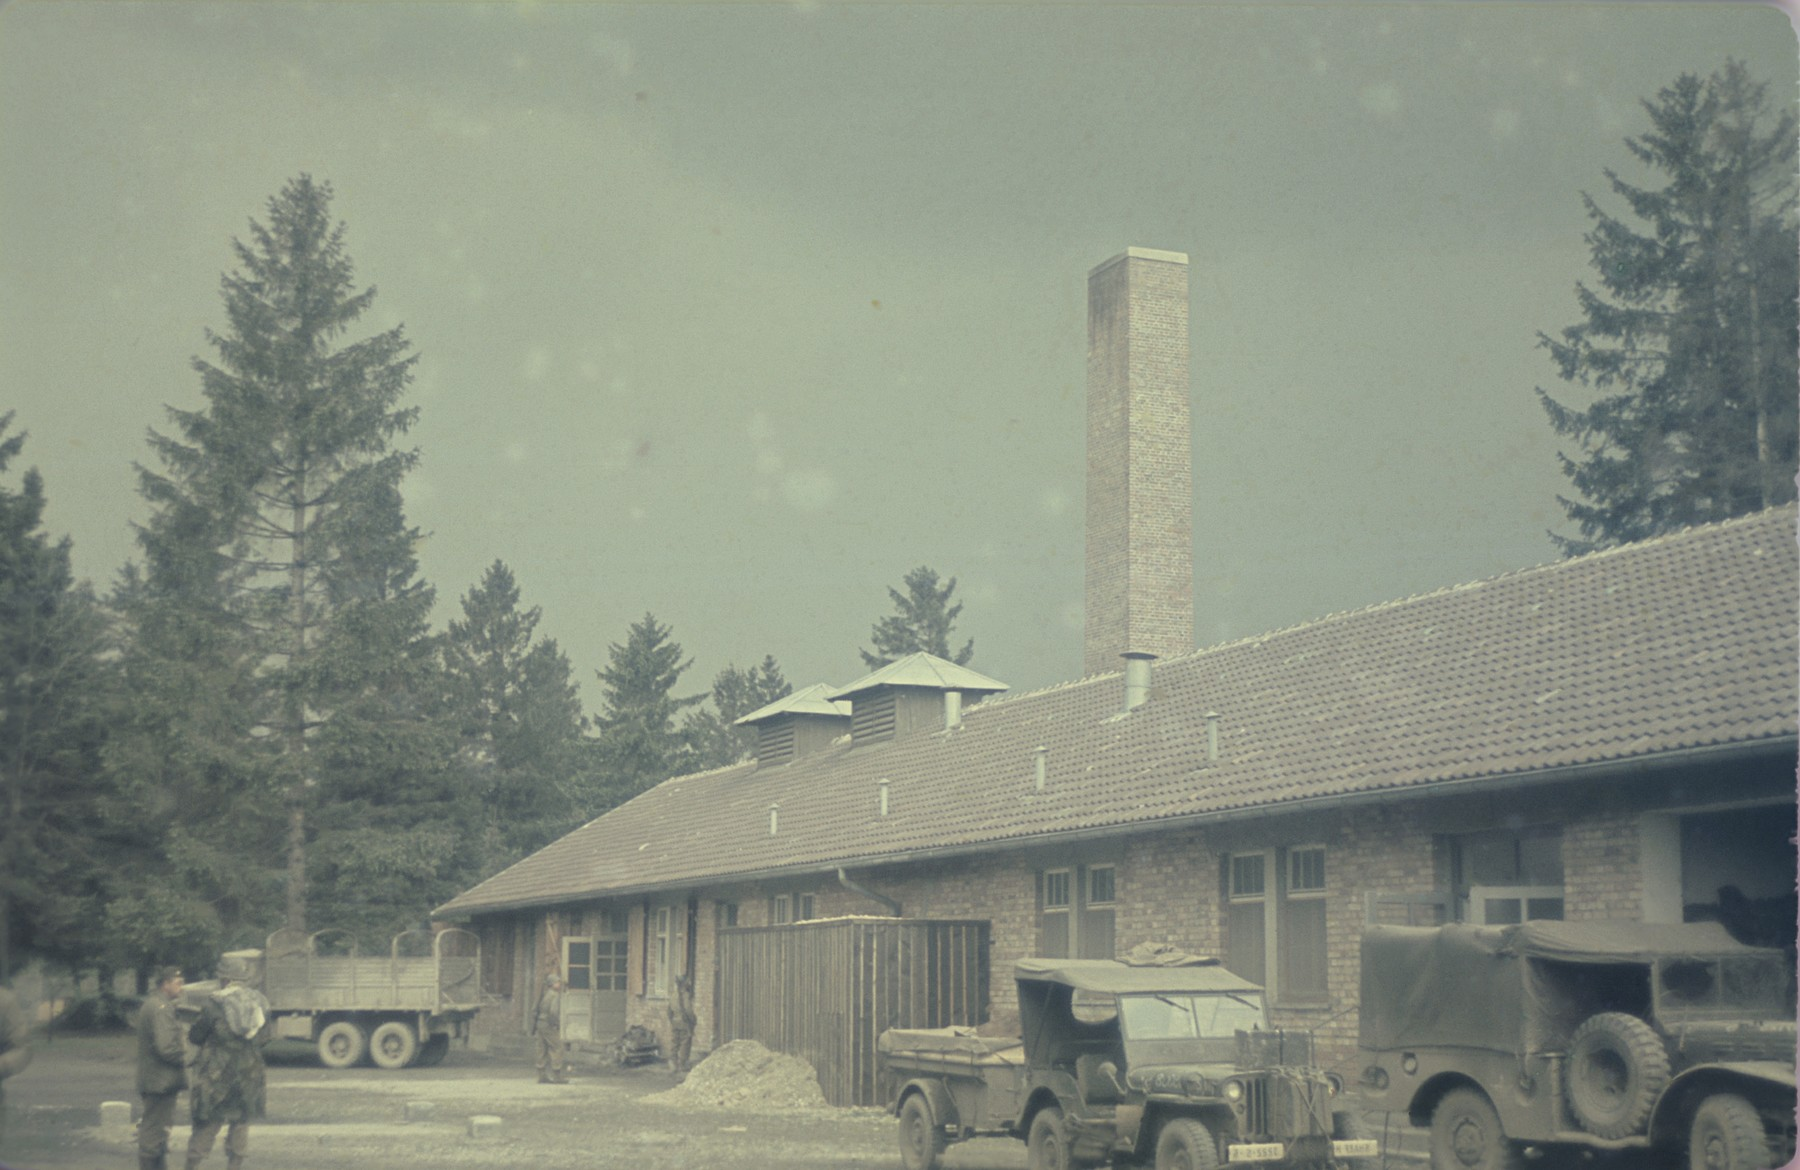 Trucks are parked in front of the crematorium in the newly liberated Dachau concentration camp.